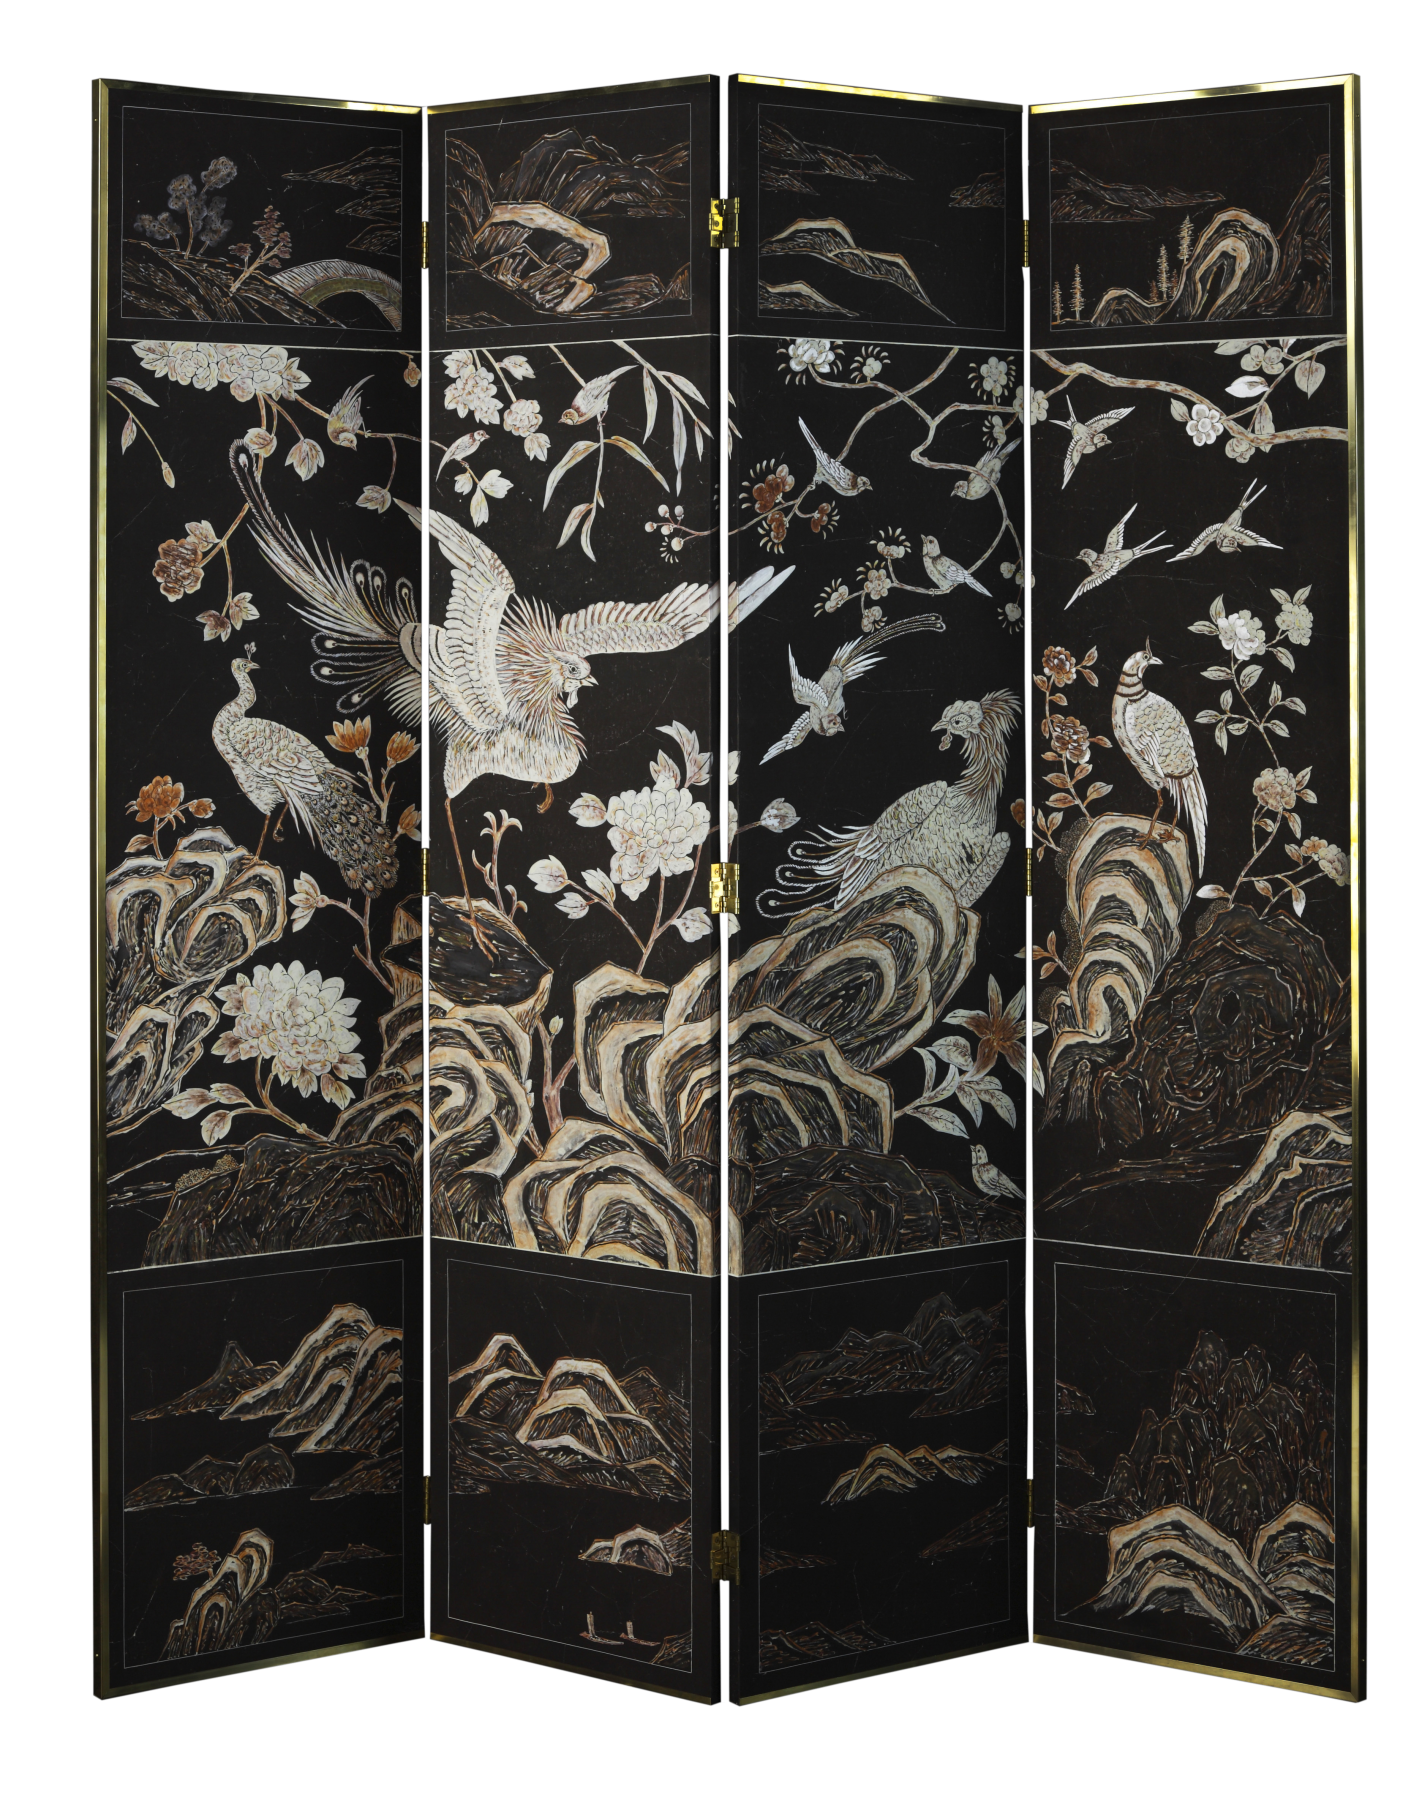 Divine De Gournay Folding Screen Eclectic Decor - Hand Painted Furniture